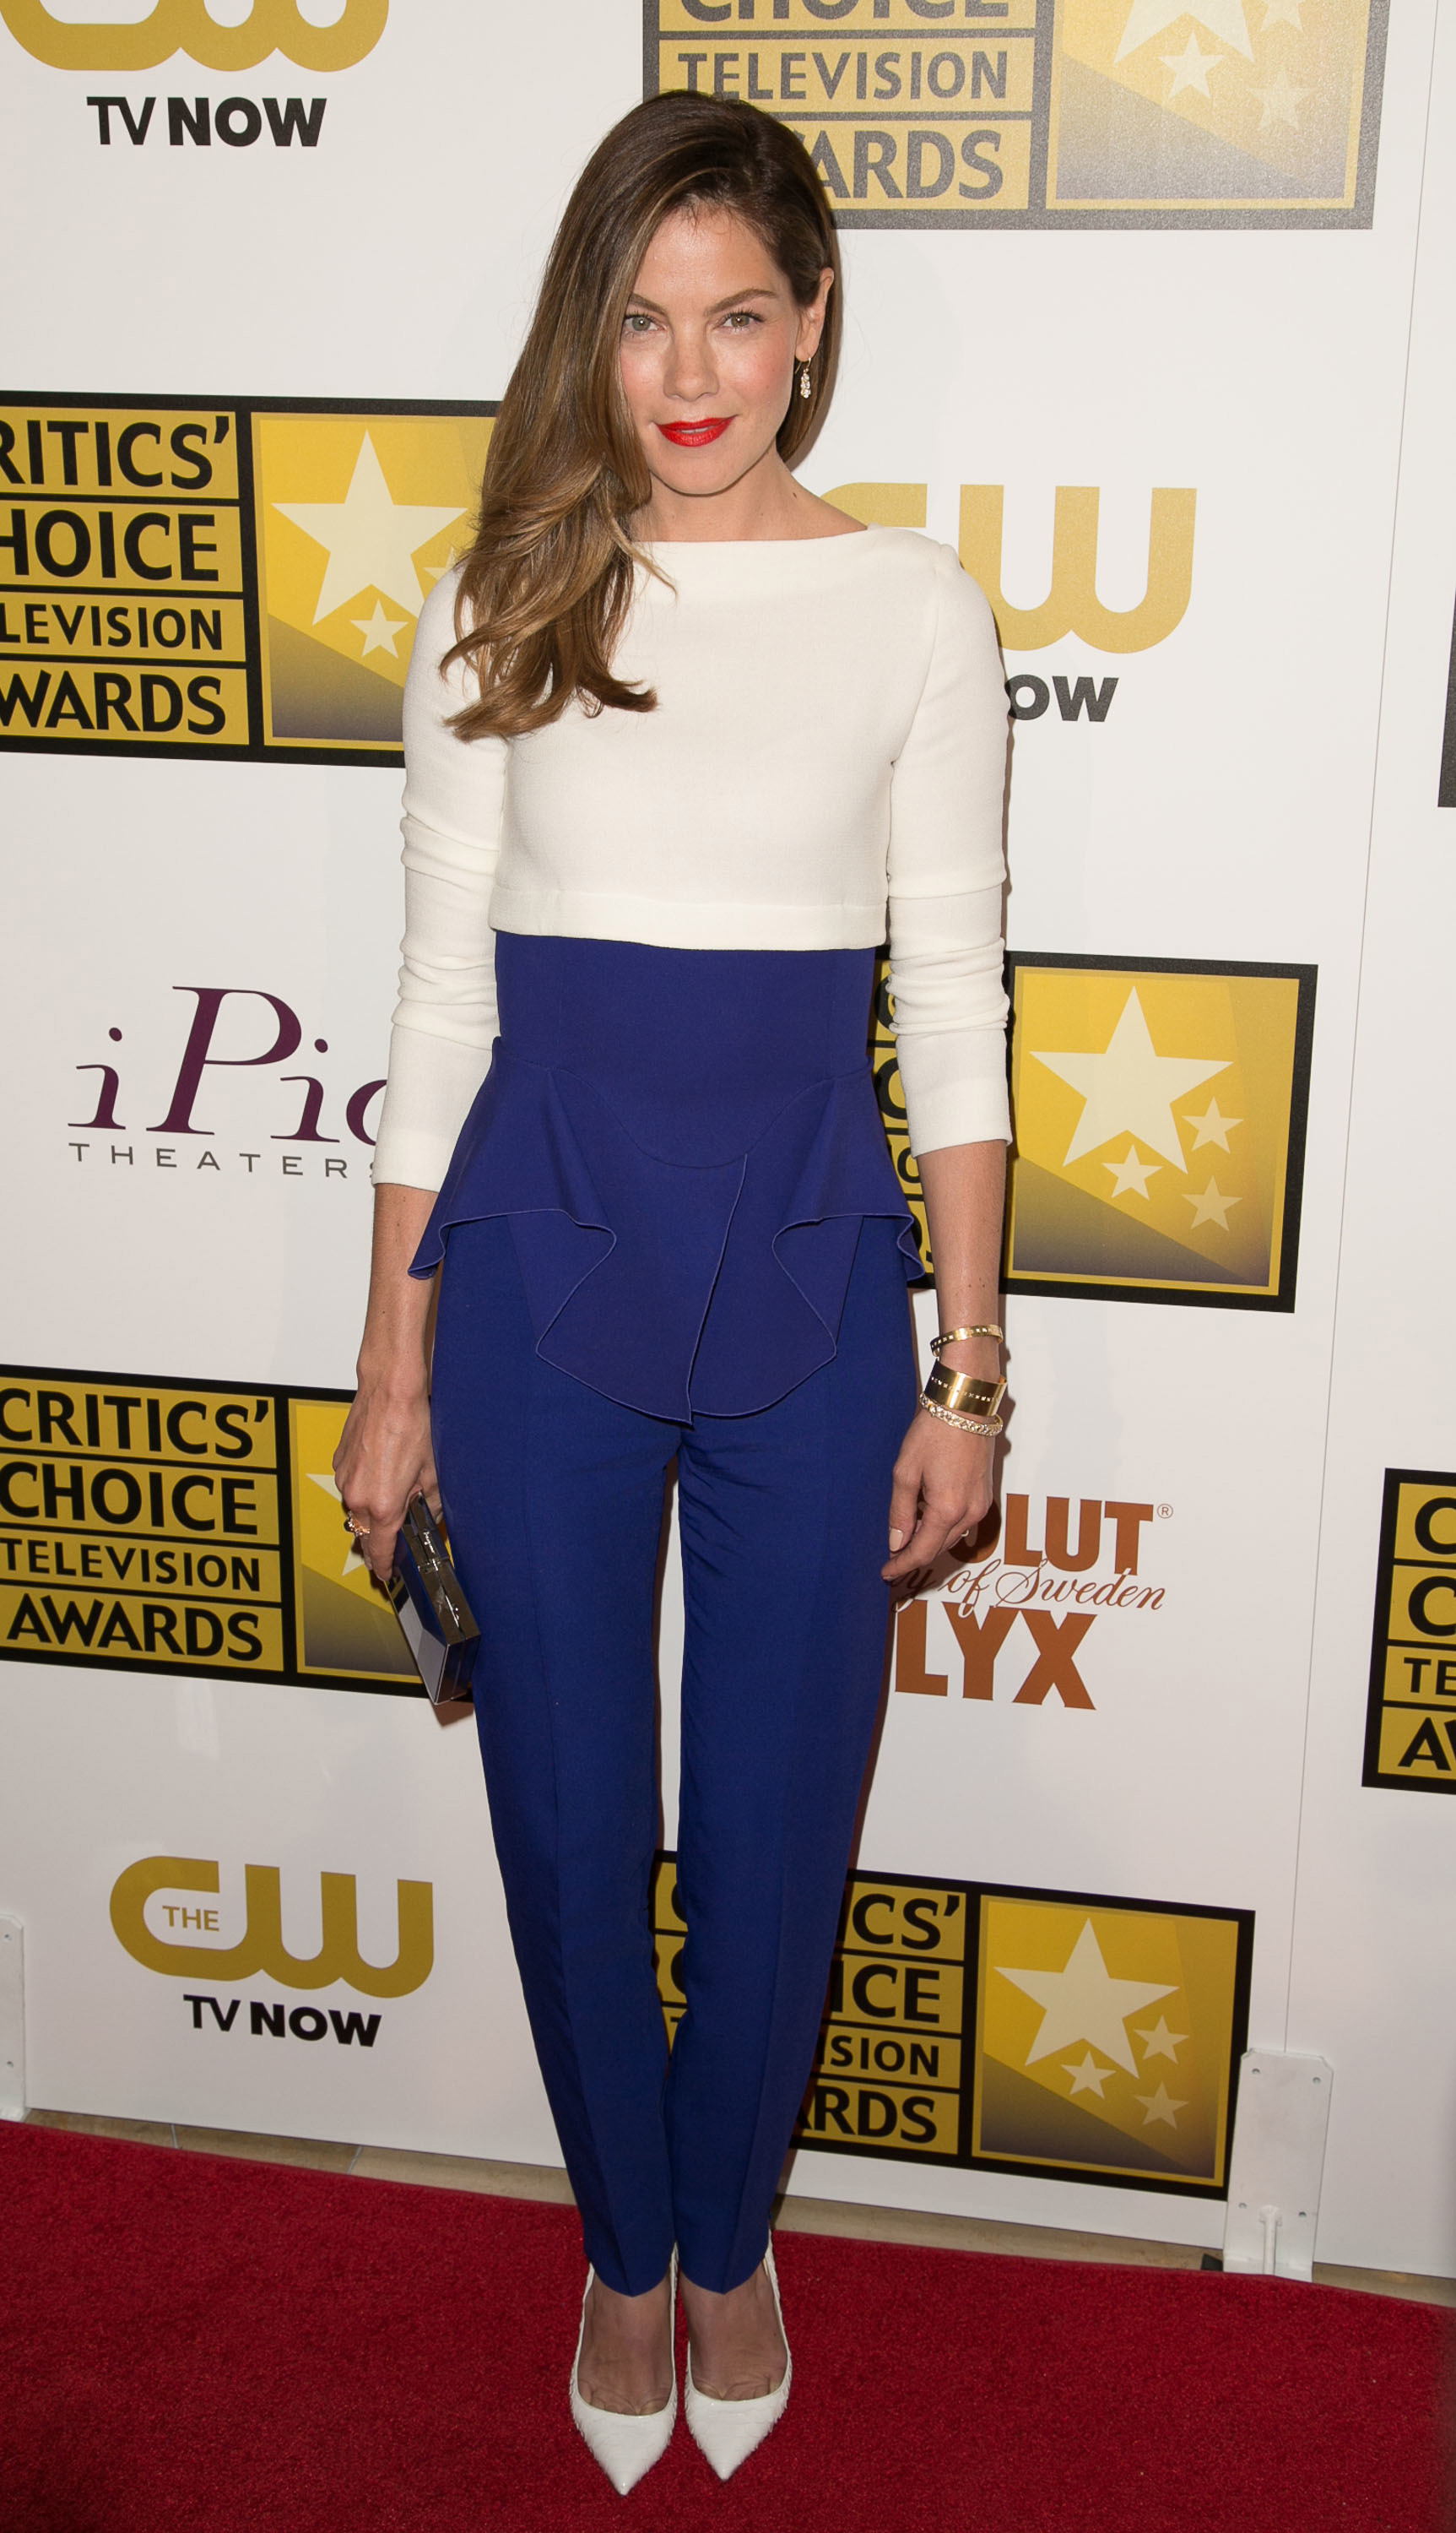 Michelle Monaghan at the Critic's Choice Awards